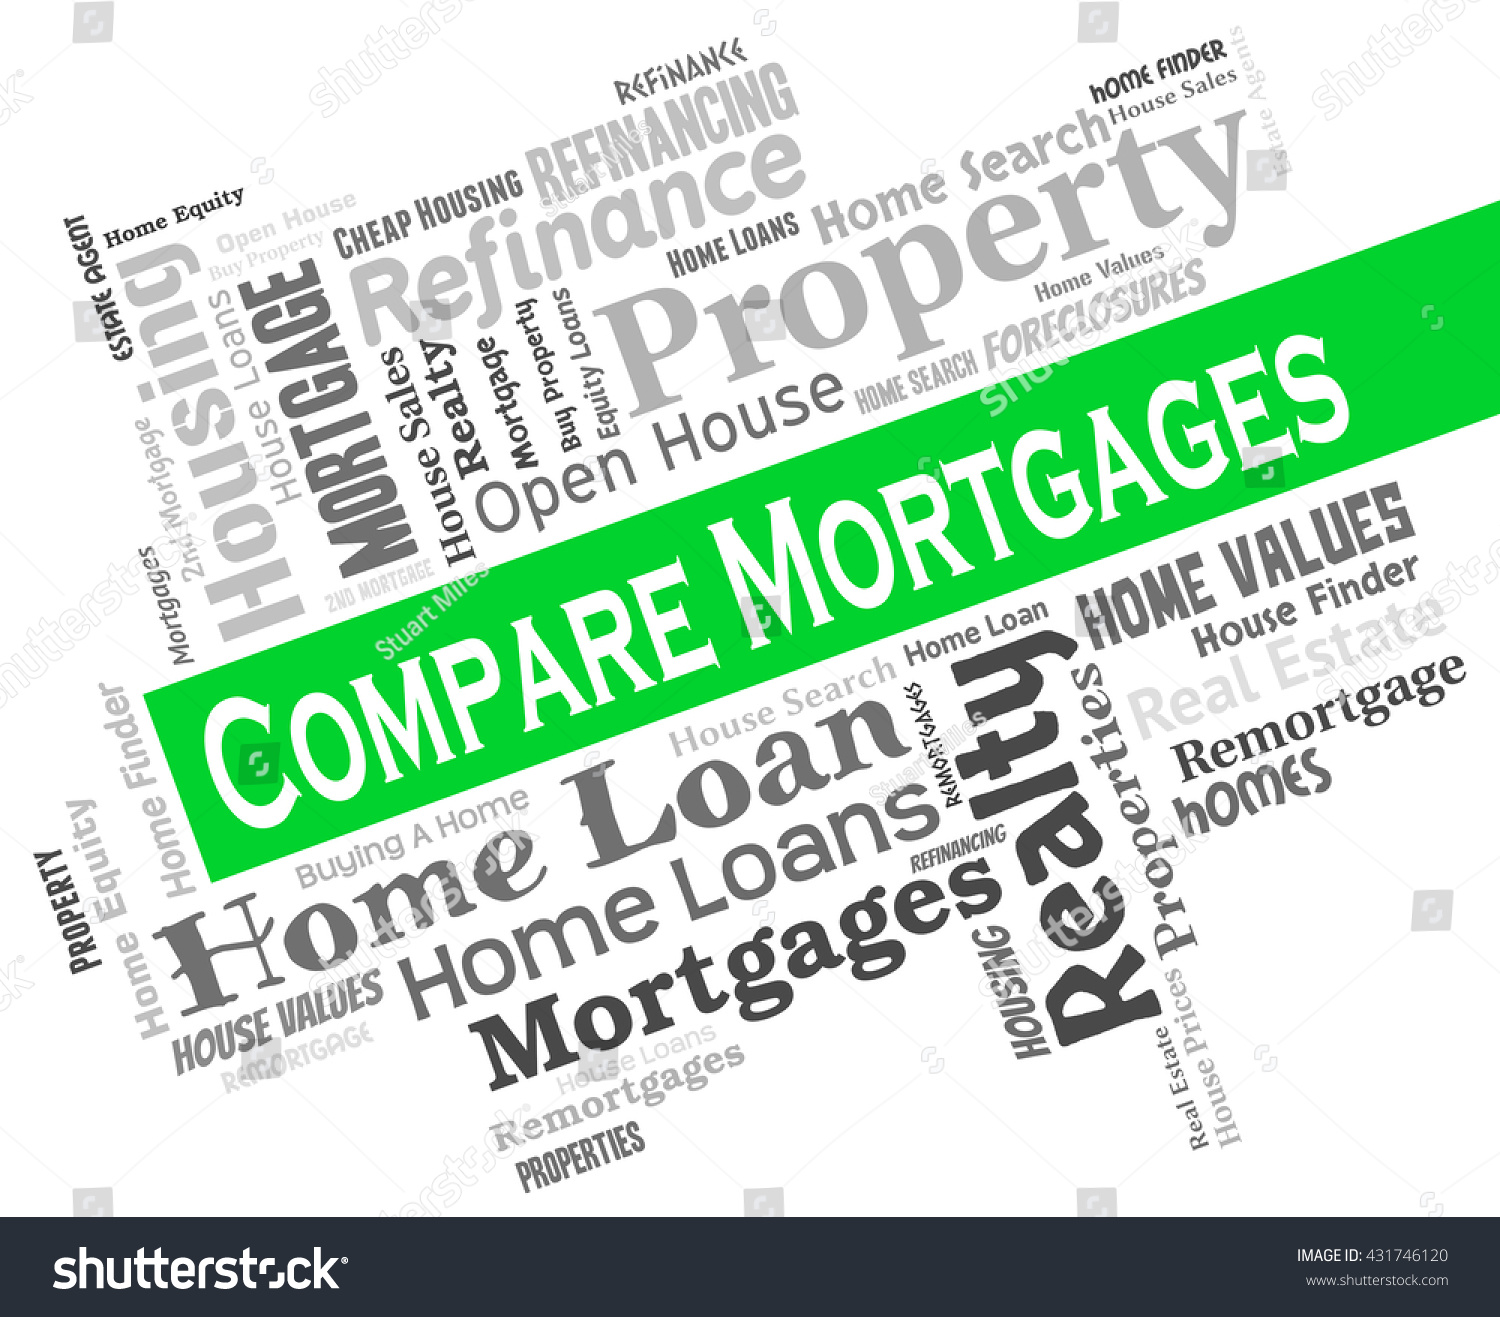 campare mortgages